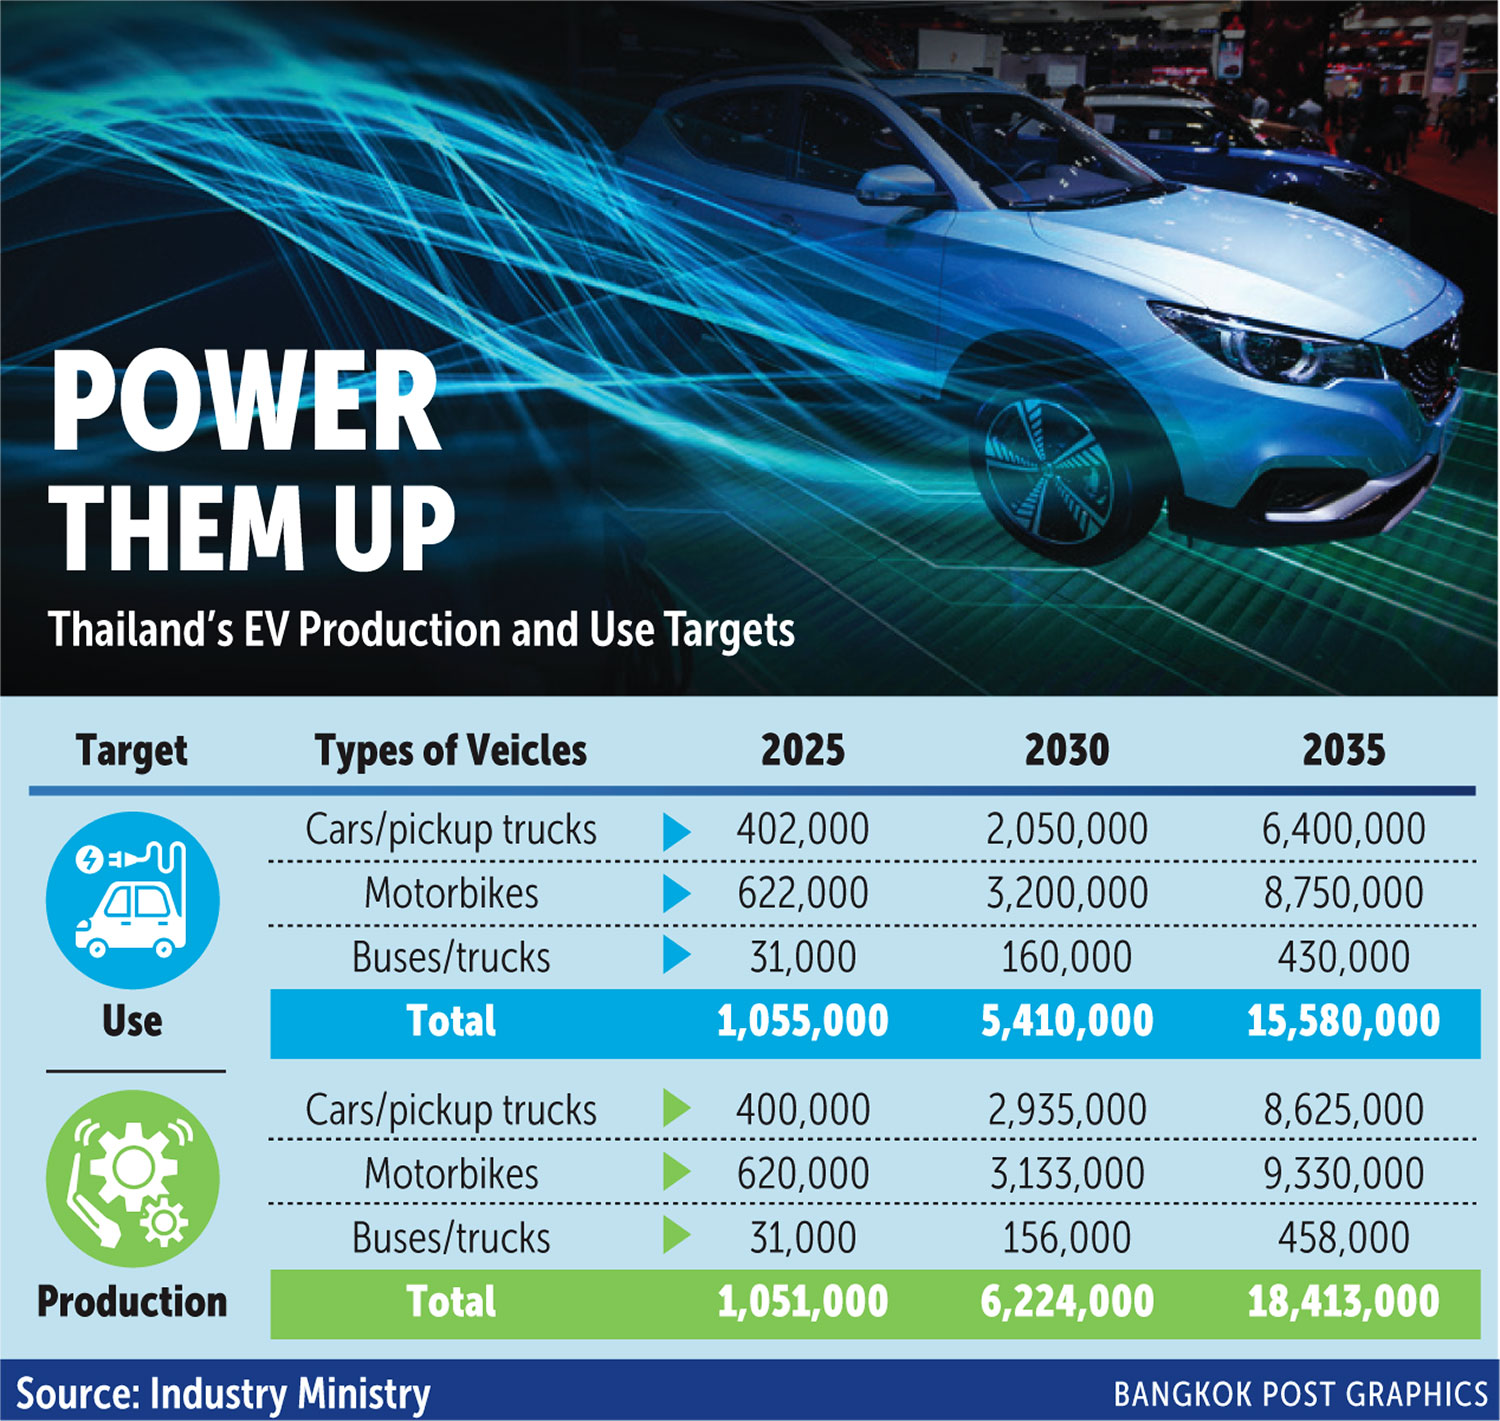 POWERING UP THAILAND'S ELECTRIC VEHICLES